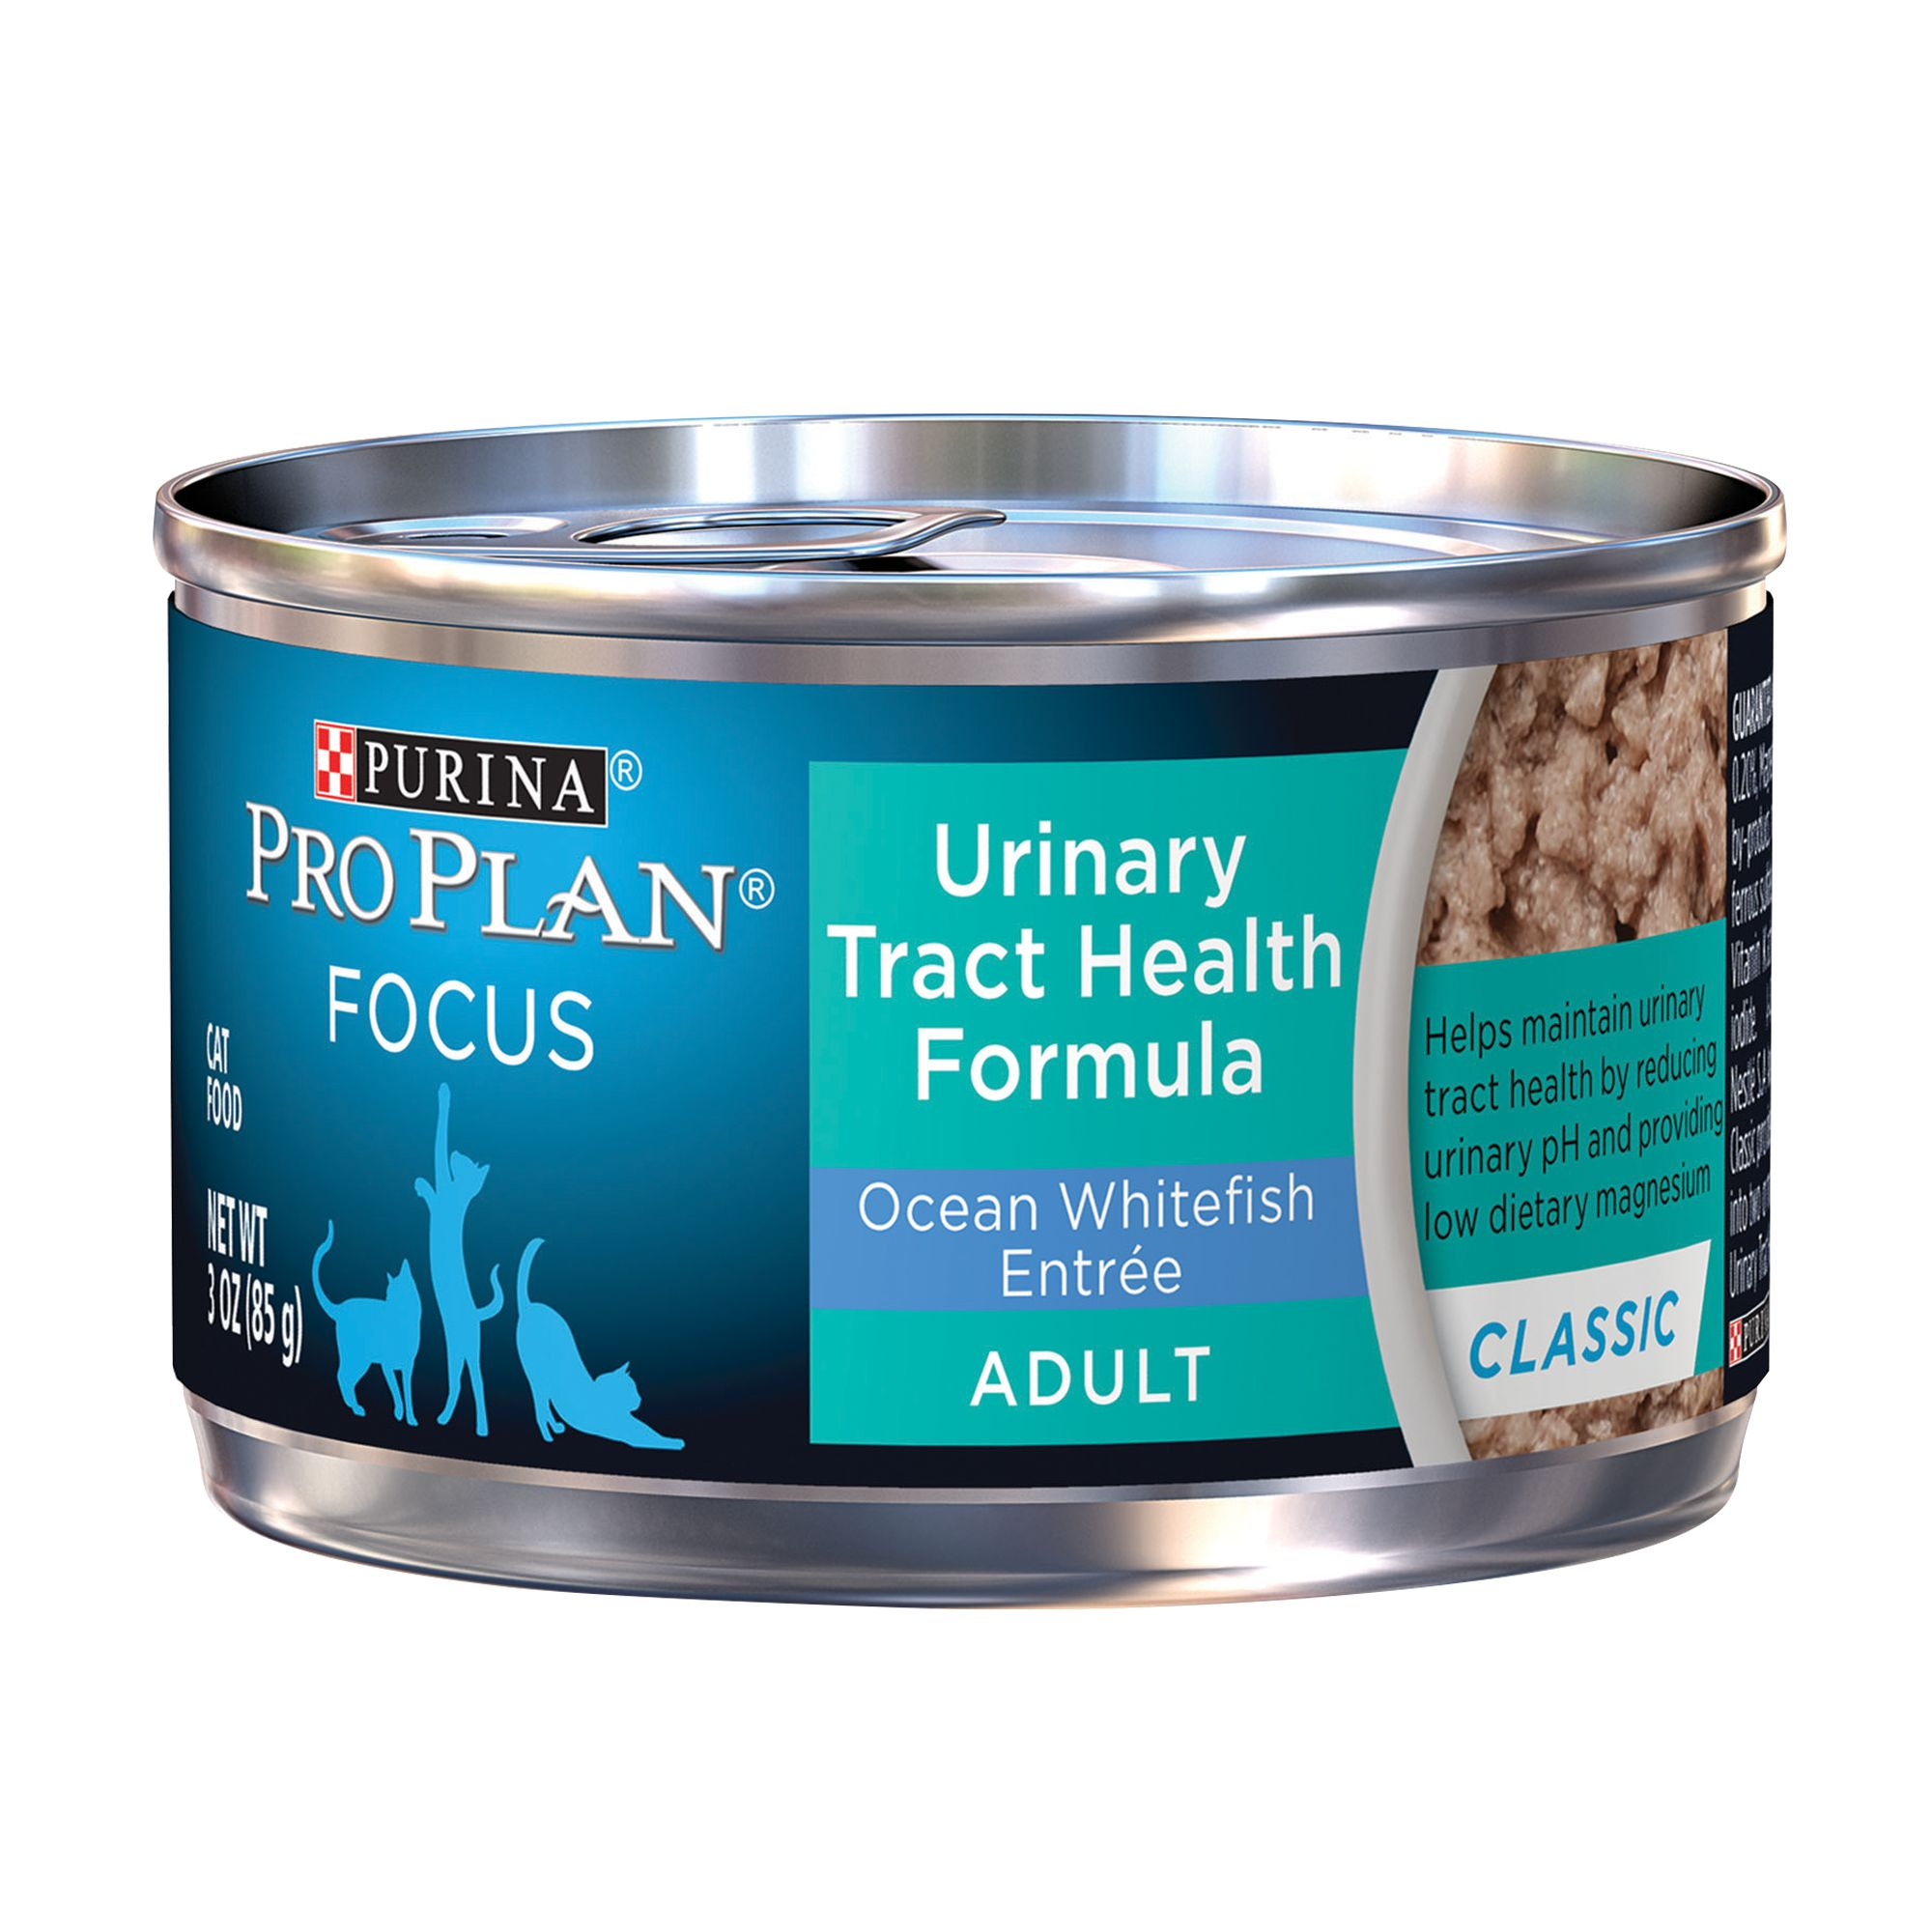 Purina Pro Plan Focus Adult Cat Food Urinary Tract Health Ocean